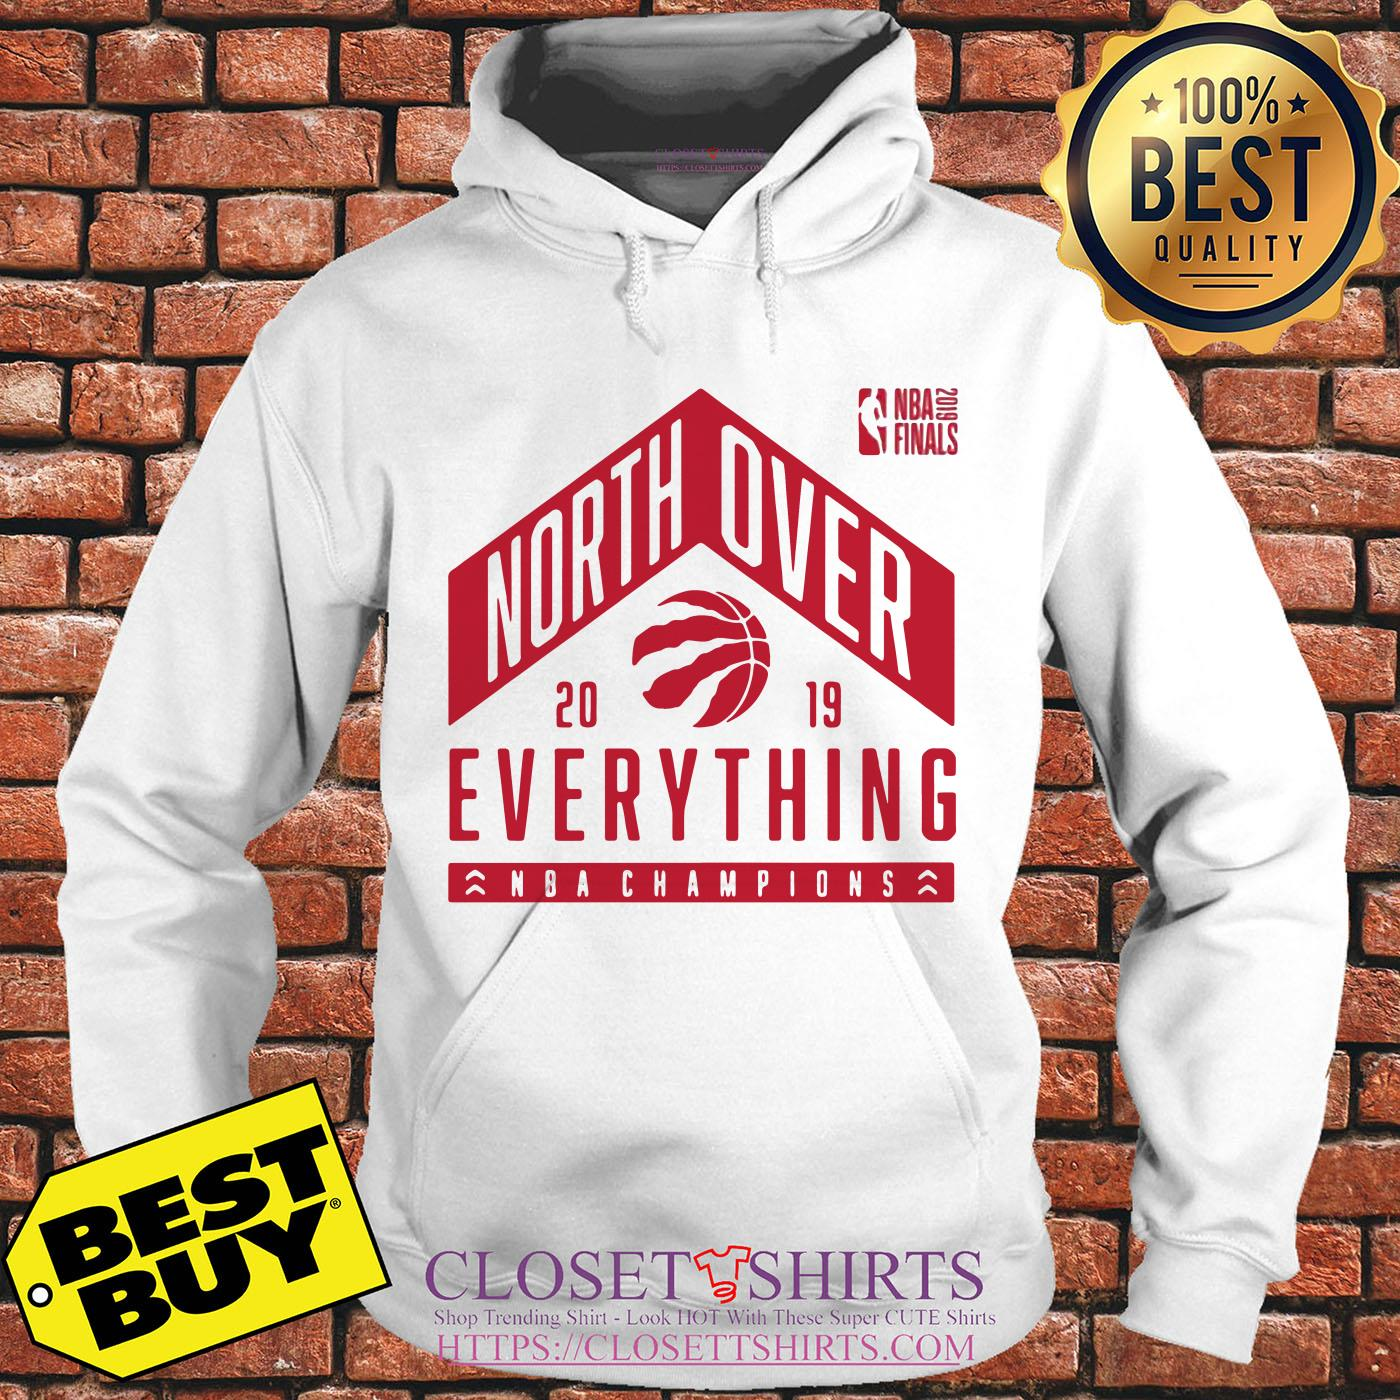 Tech Hometown Toronto Raptors North Over 2019 Nba Finals Champions hoodie